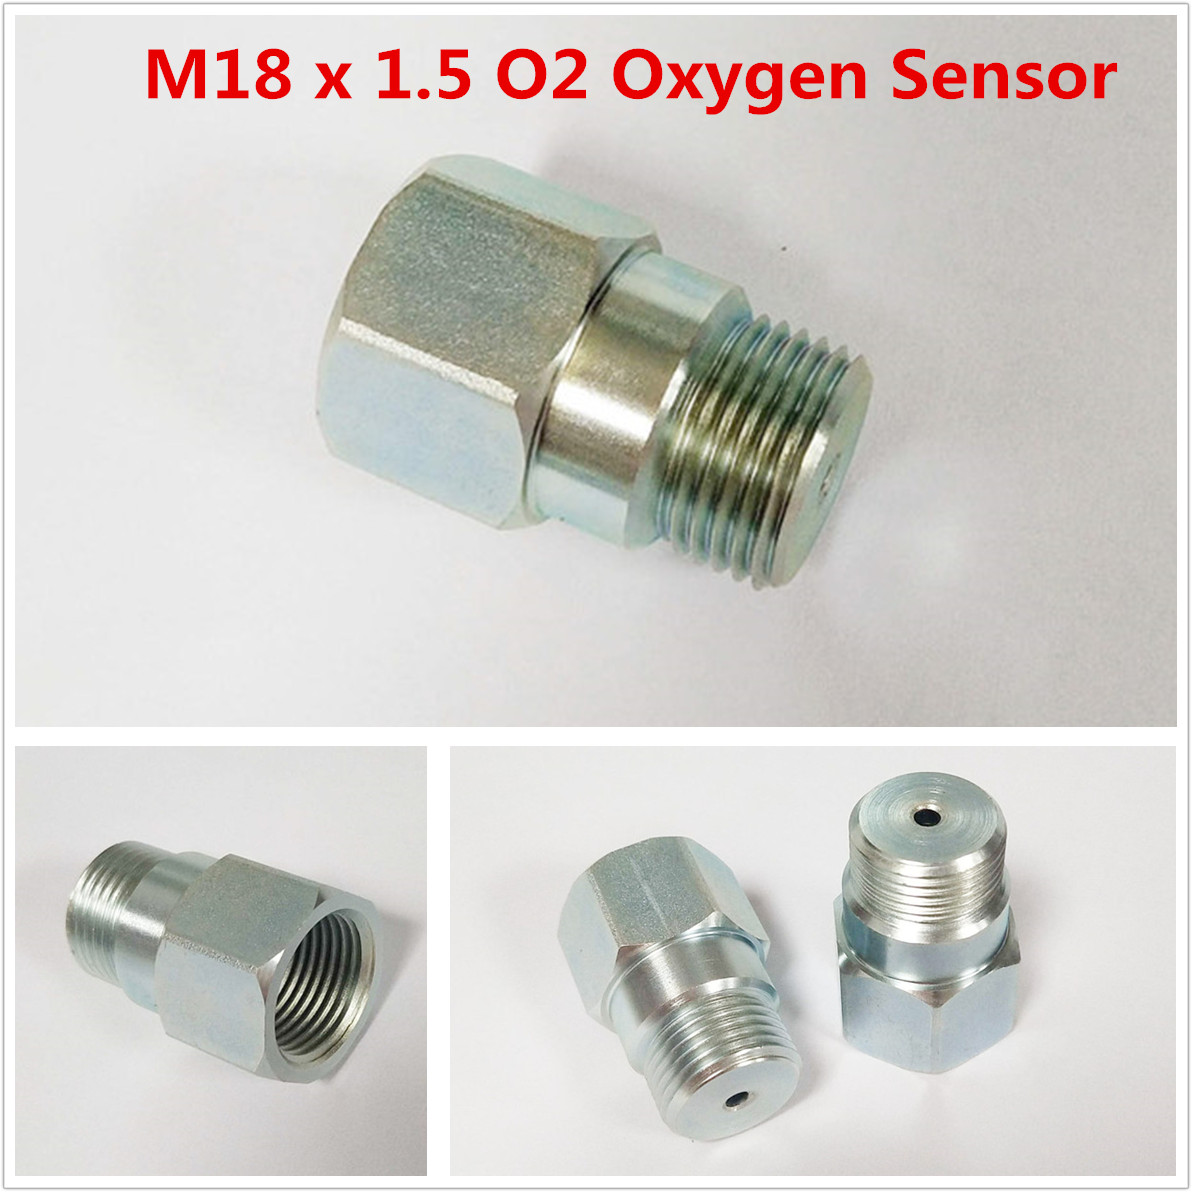 New Universal 125 Degree M18x1.5 Stainless Steel 18mm Oxygen Sensor O2 Extension